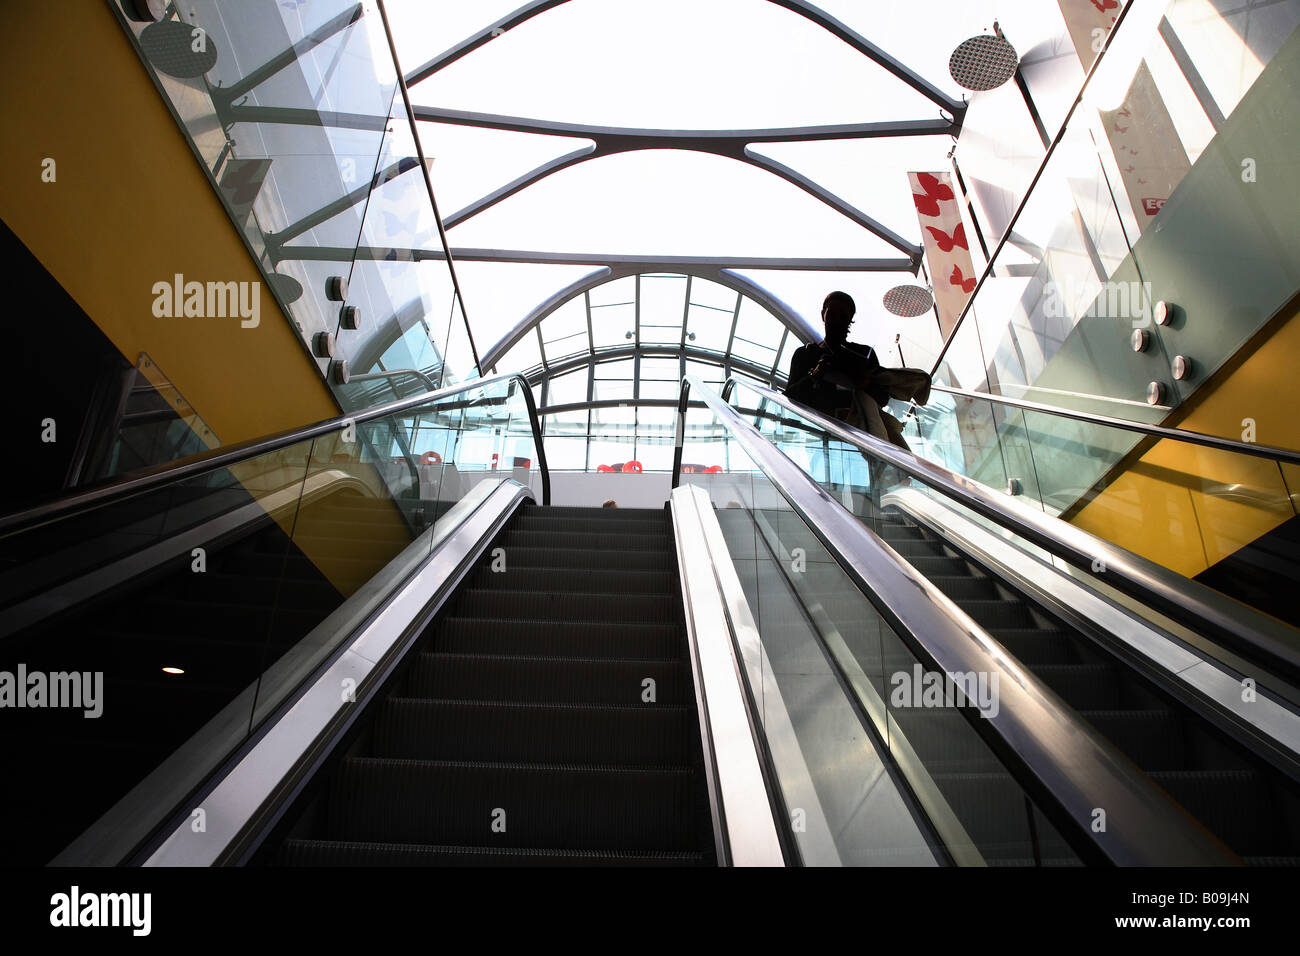 Escalator of the Arena and Conference Centre Liverpool - Stock Image